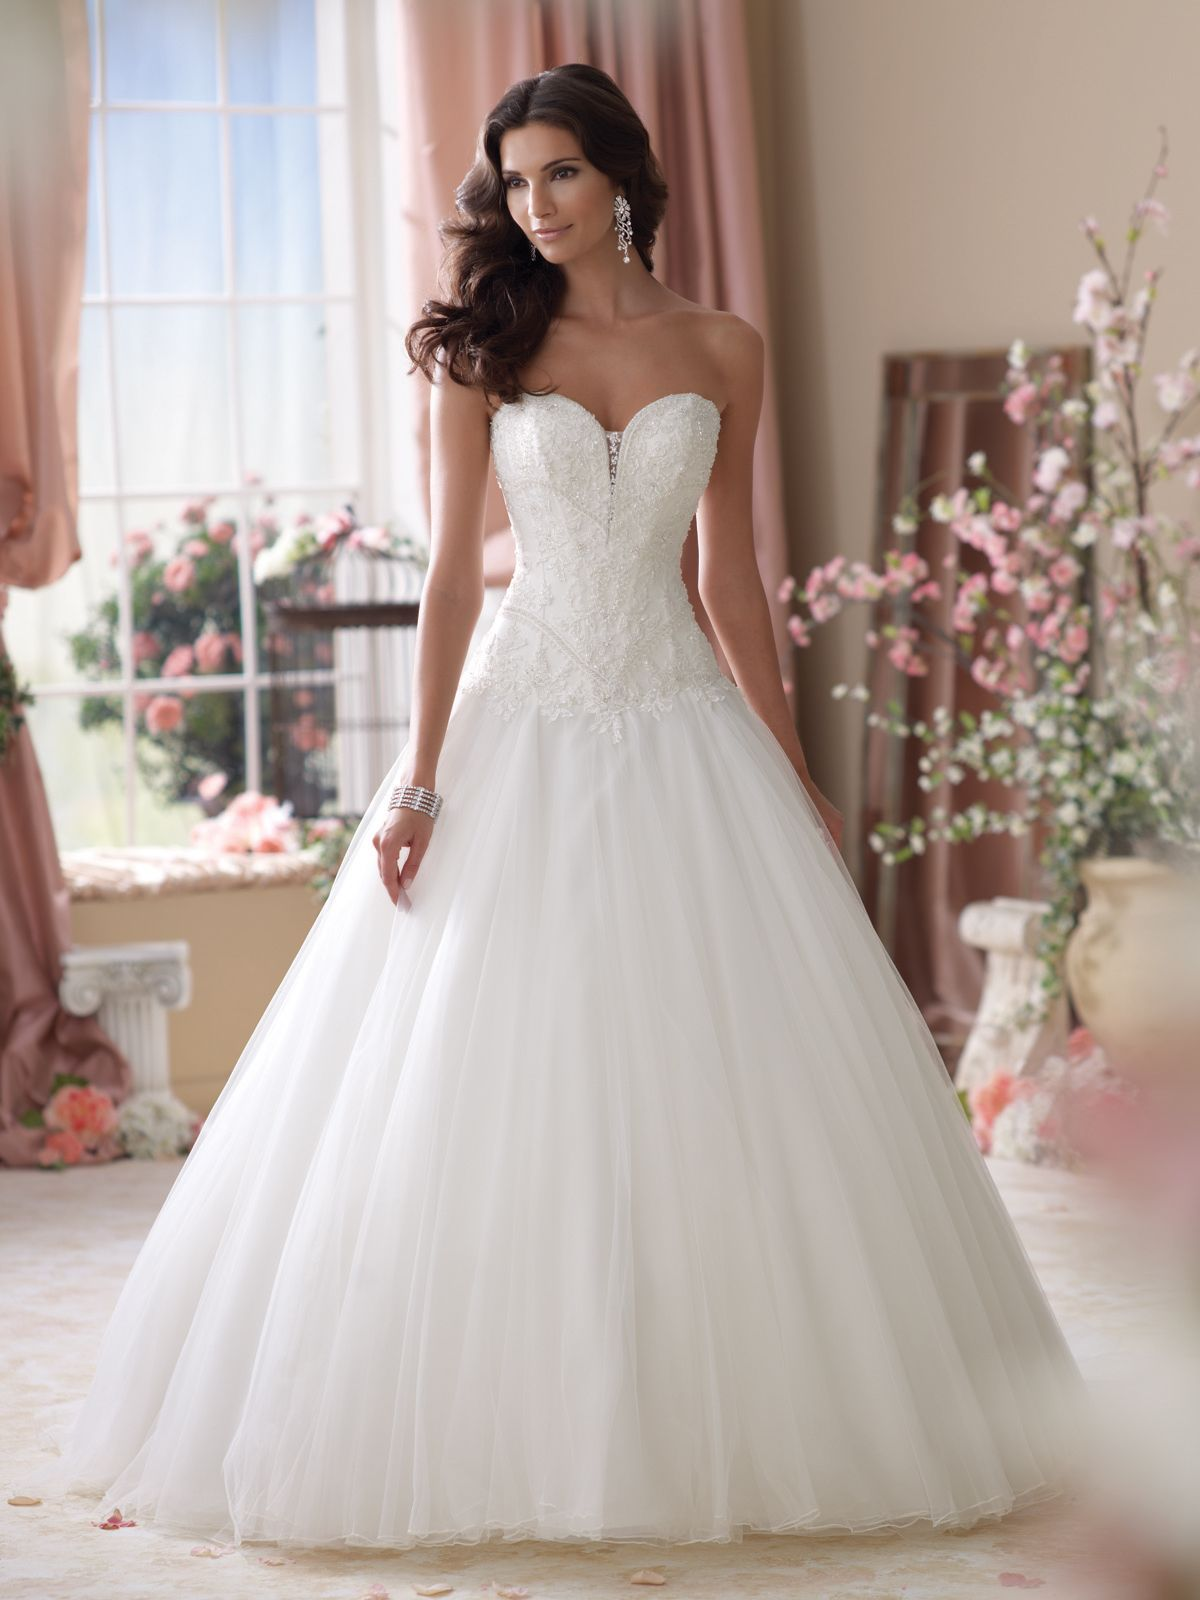 Strapless Embroidered Lace And Tulle Ball Gown Wedding Dress Hand Beaded Deep Sweetheart Neckline